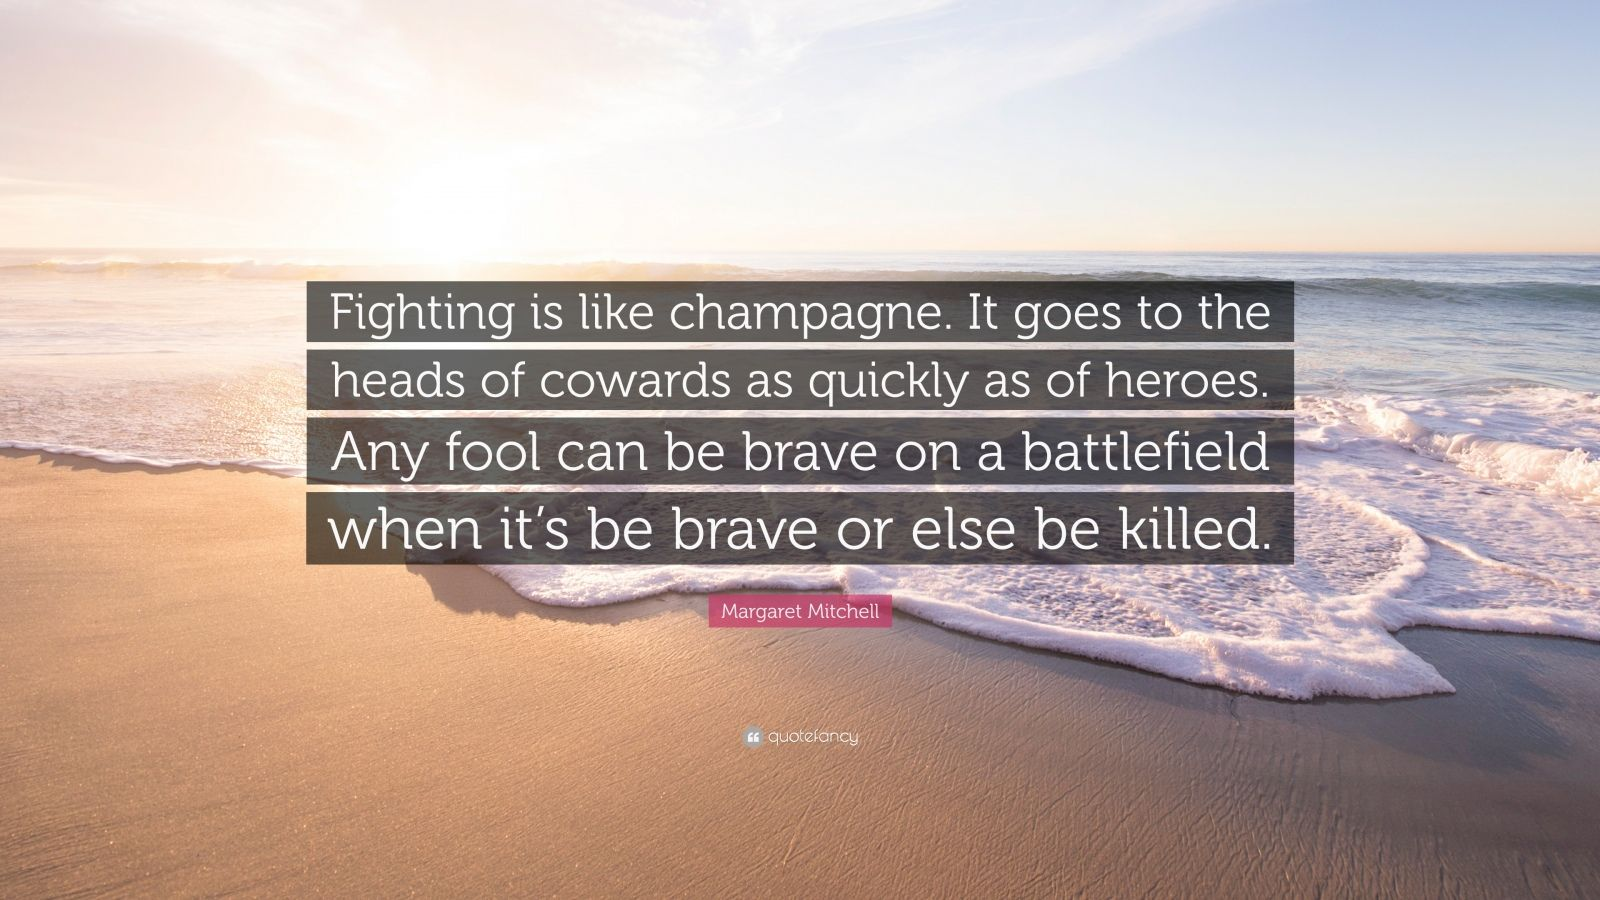 """Margaret Mitchell Quote: """"Fighting is like champagne. It goes to the heads of cowards as quickly as of heroes. Any fool can be brave on a battlefield when it's be brave or else be killed."""""""